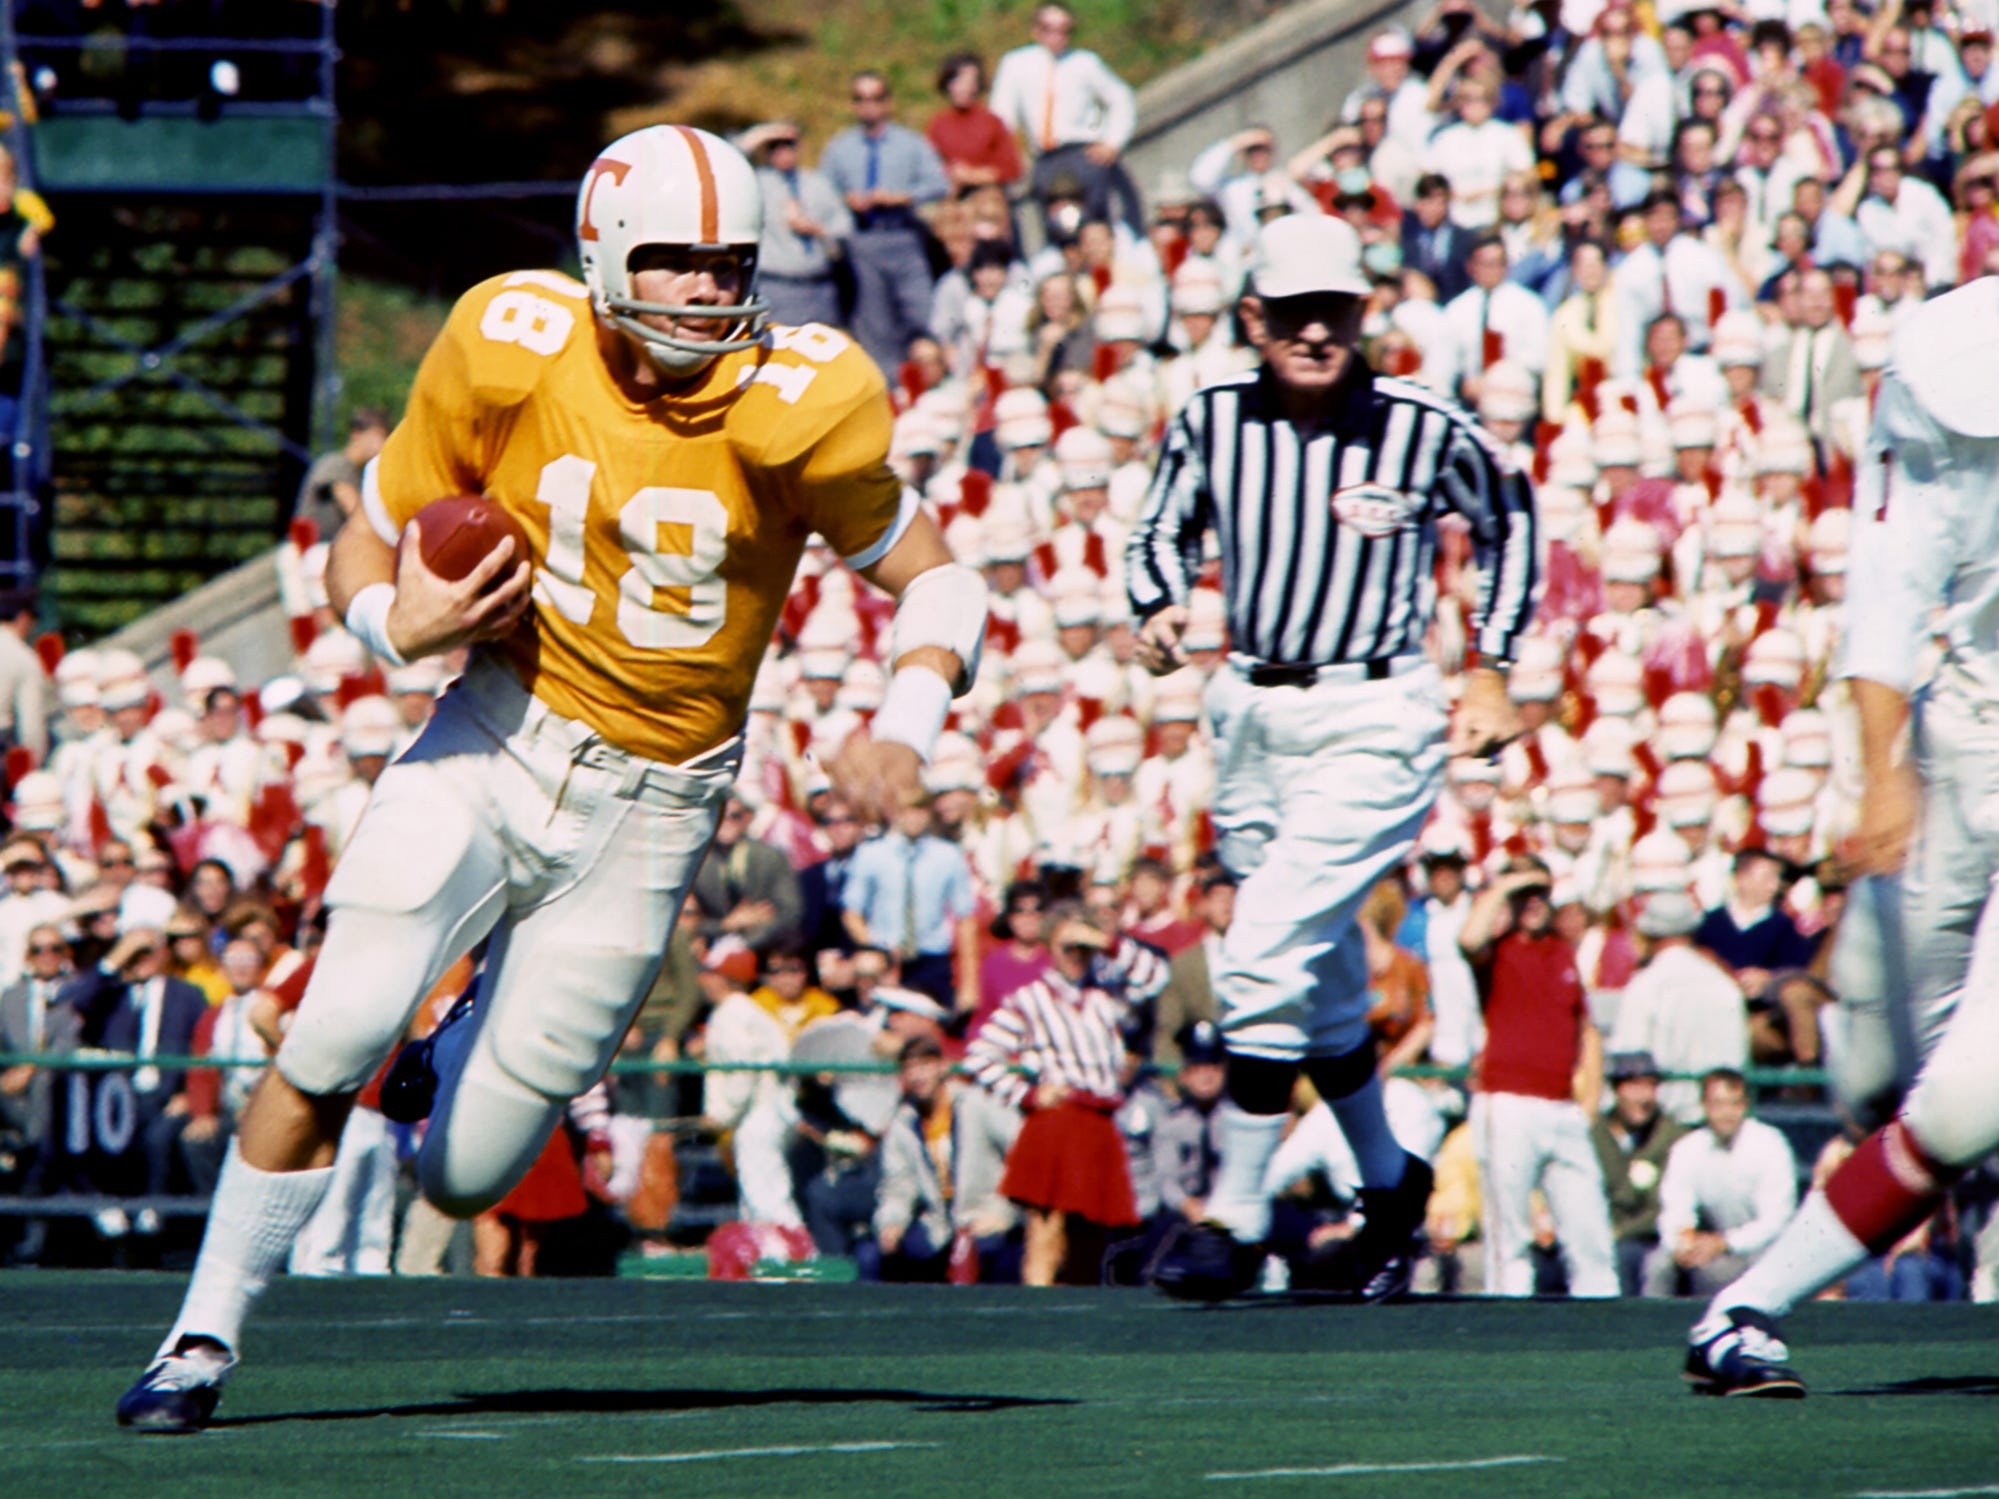 Tennessee senior quarterback Bubba Wyche (18) takes off running against Alabama. Wyche was 13 of 22 for 100 yards passing as Tennessee survived a missed two-point conversion, an onside kick and a missed field goal in the final minute and 12 seconds to win 10-9 before 63,392 fans at Neyland Stadium on Oct. 19, 1968.